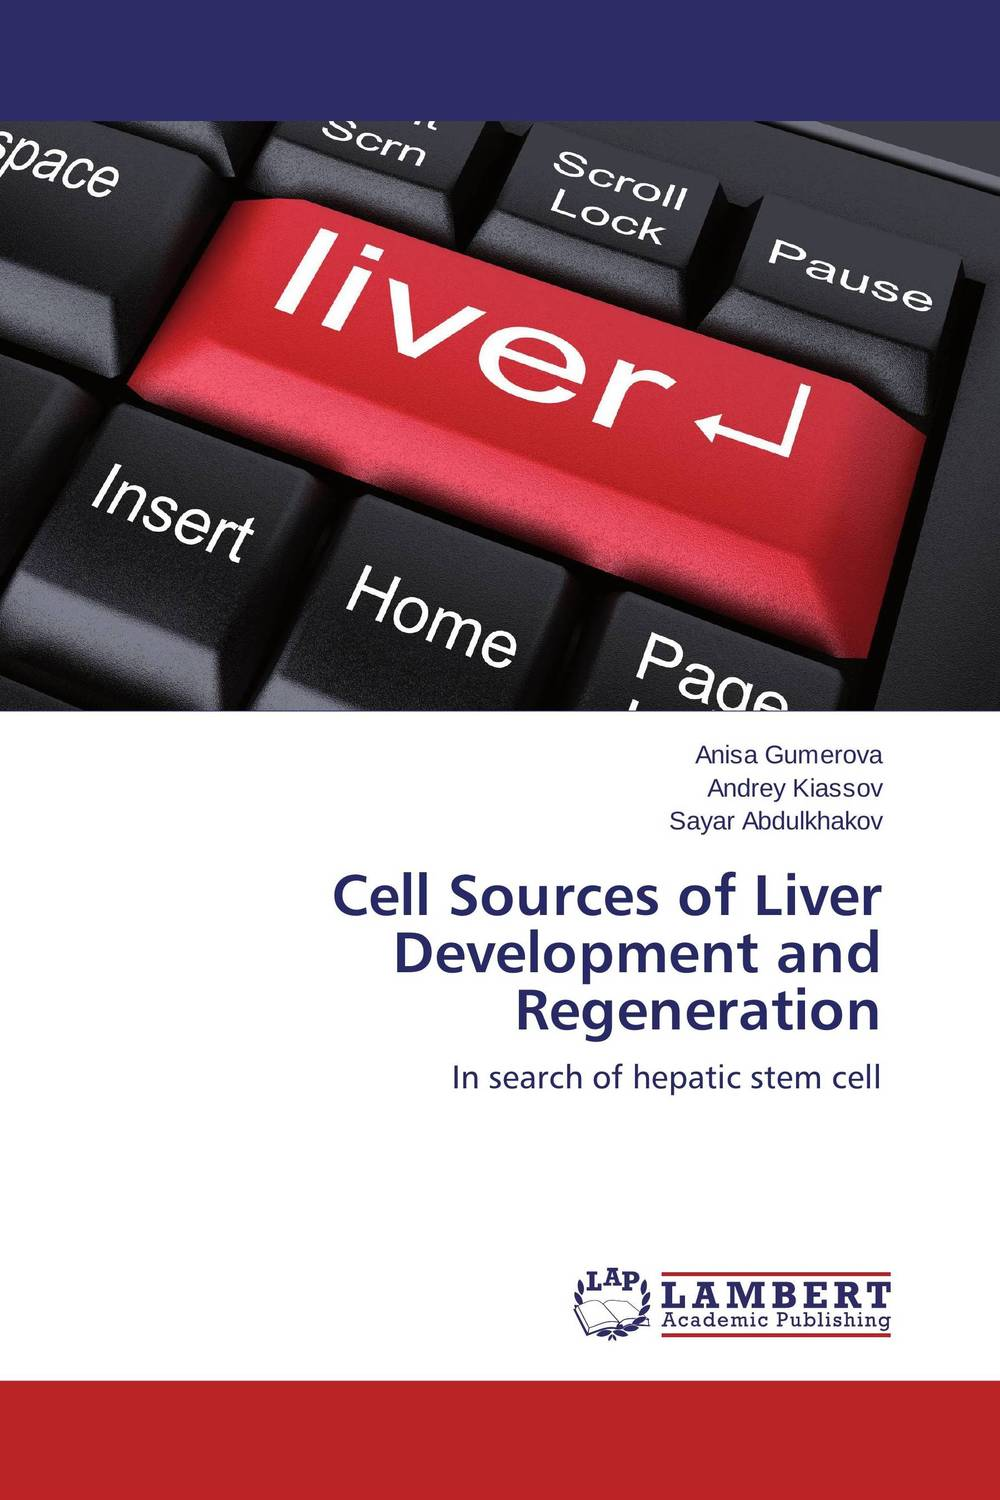 Cell Sources of Liver Development and Regeneration viruses cell transformation and cancer 5